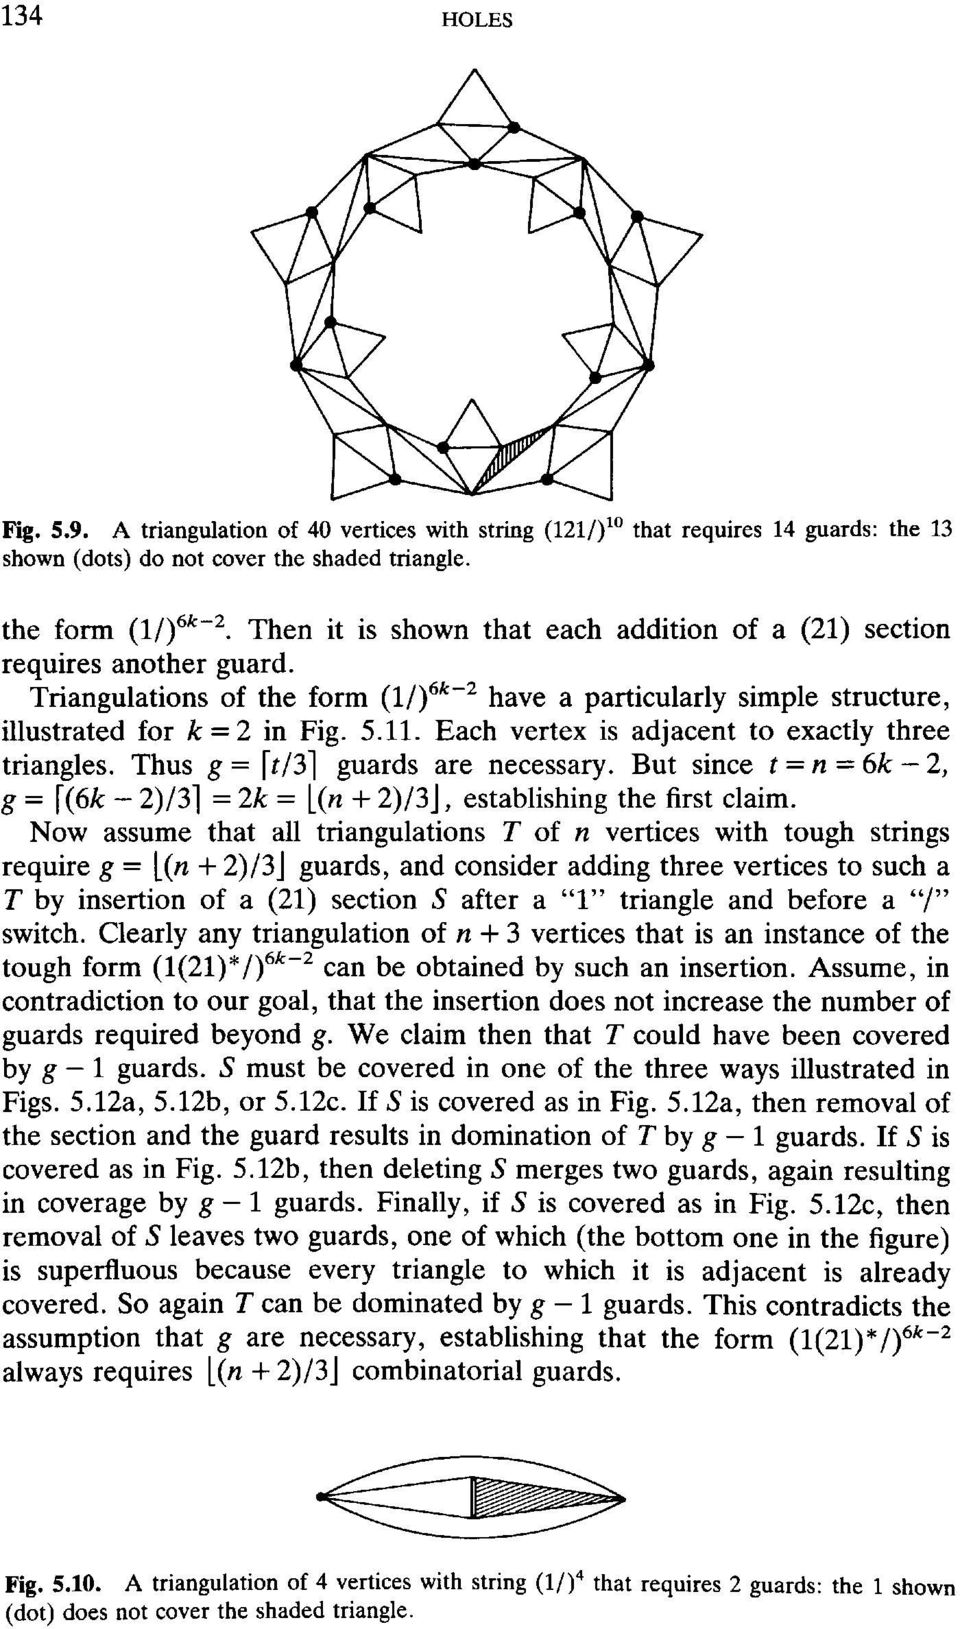 Each vertex is adjacent to exactly three triangles. Thus g = \t/3] guards are necessary. But since t = n 6k 2, g = [(6A; - 2)/3] =2k= [(n + 2)/3j, establishing the first claim.